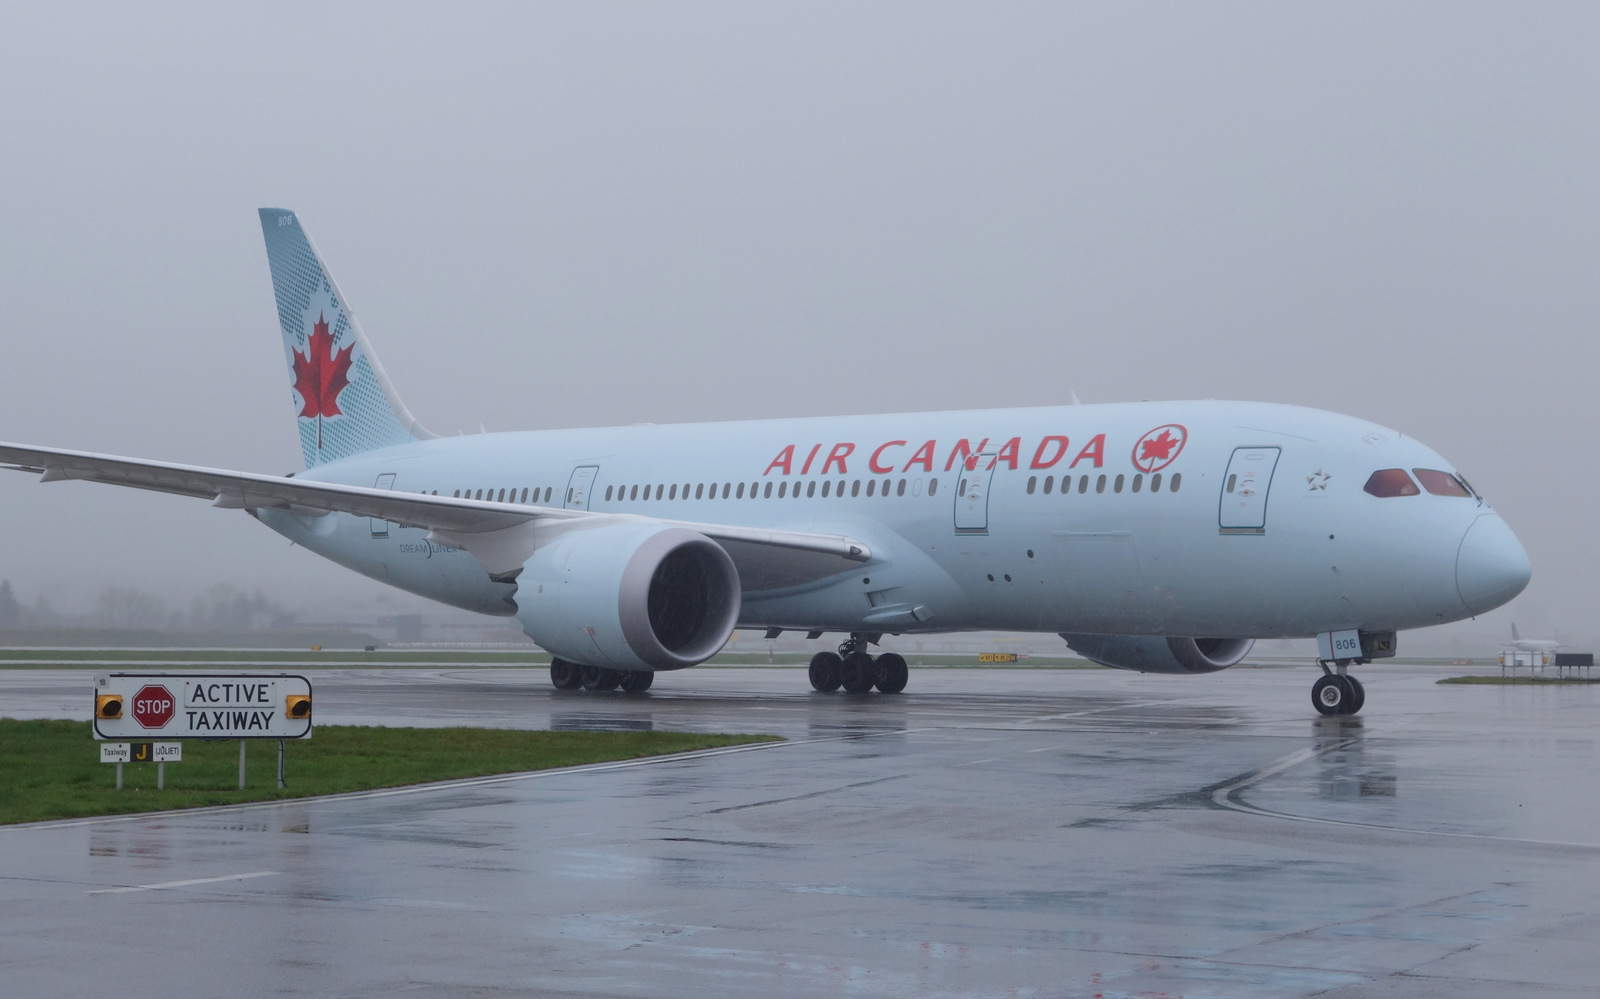 Air Canada 787-8 in the rain at YVR